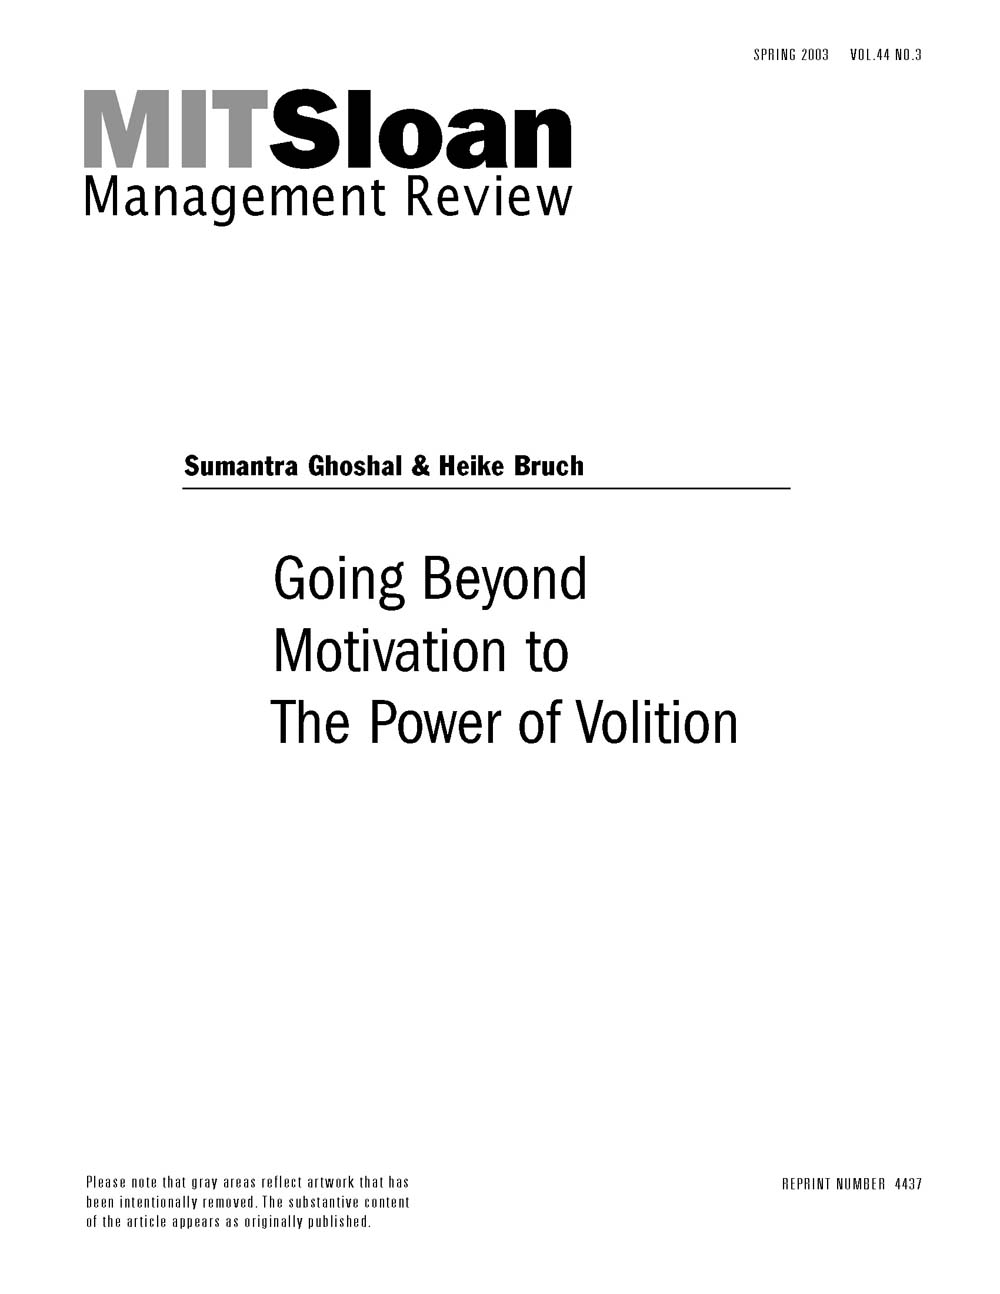 Going Beyond Motivation To The Power Of Volition Mit Smr Store